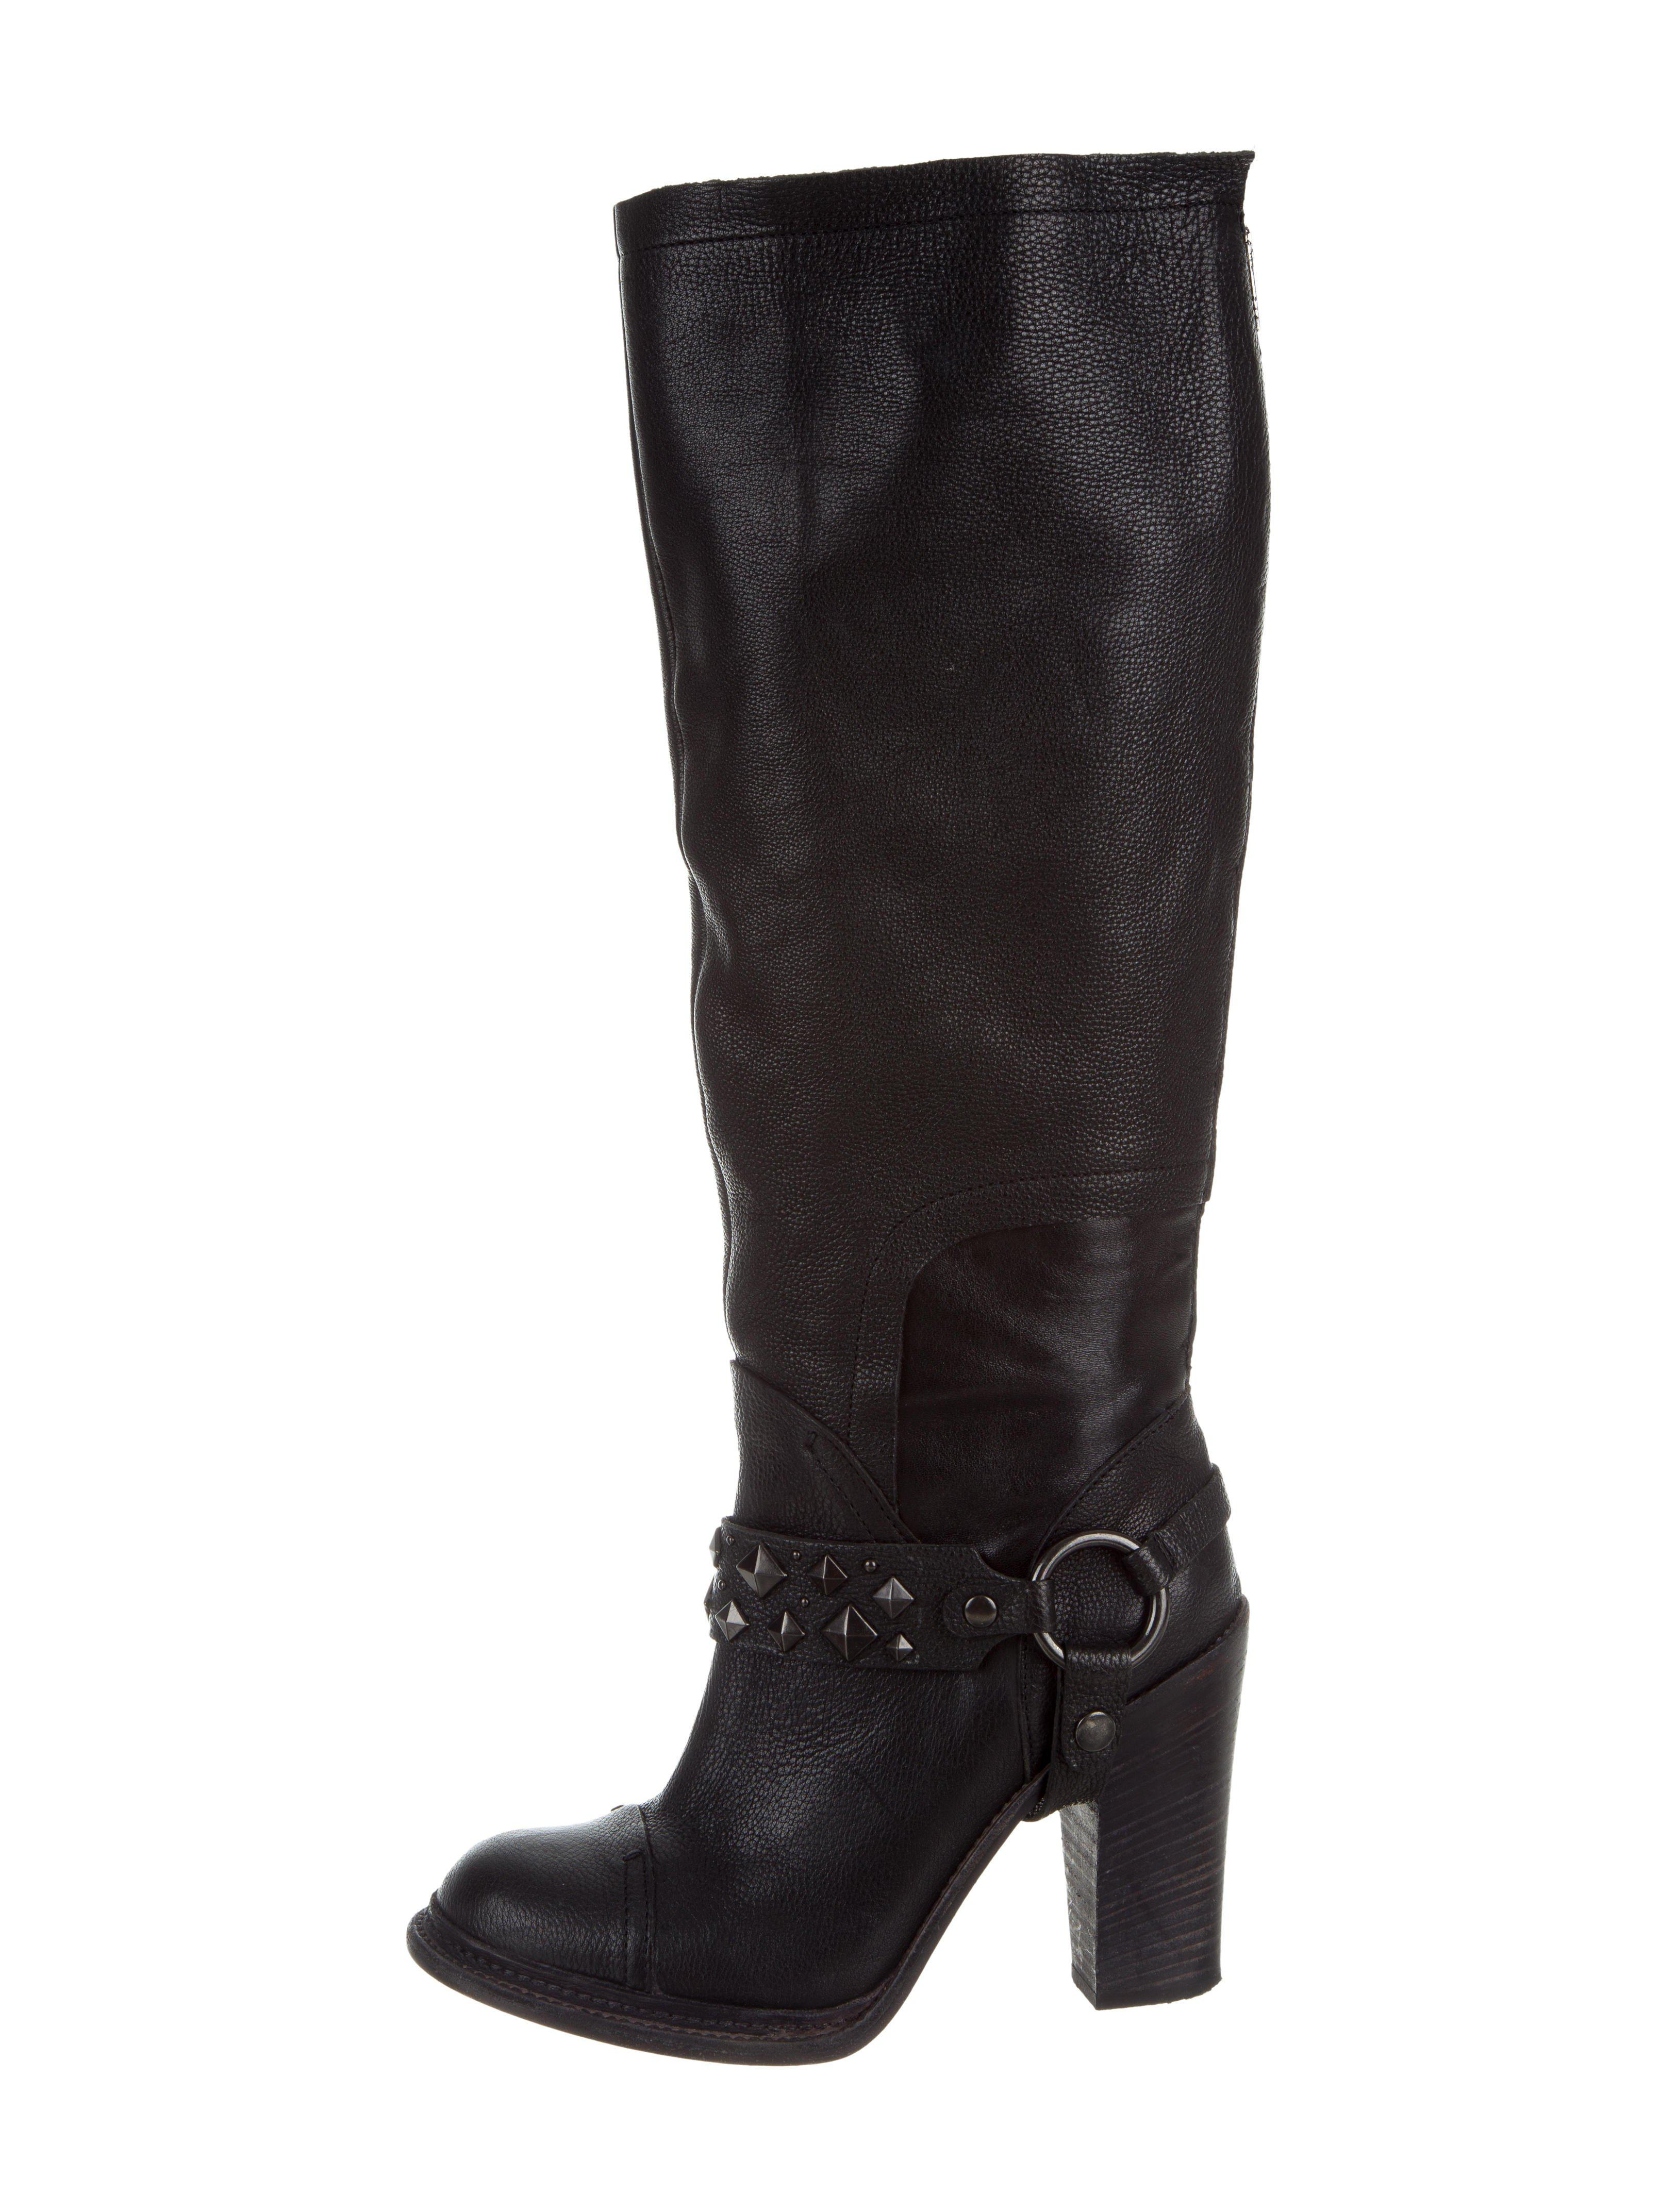 eastbay cheap online Vera Wang Stud-Embellished Knee-High Boots cheap sale hot sale cheap finishline cheap sale authentic 94hcOsjw7